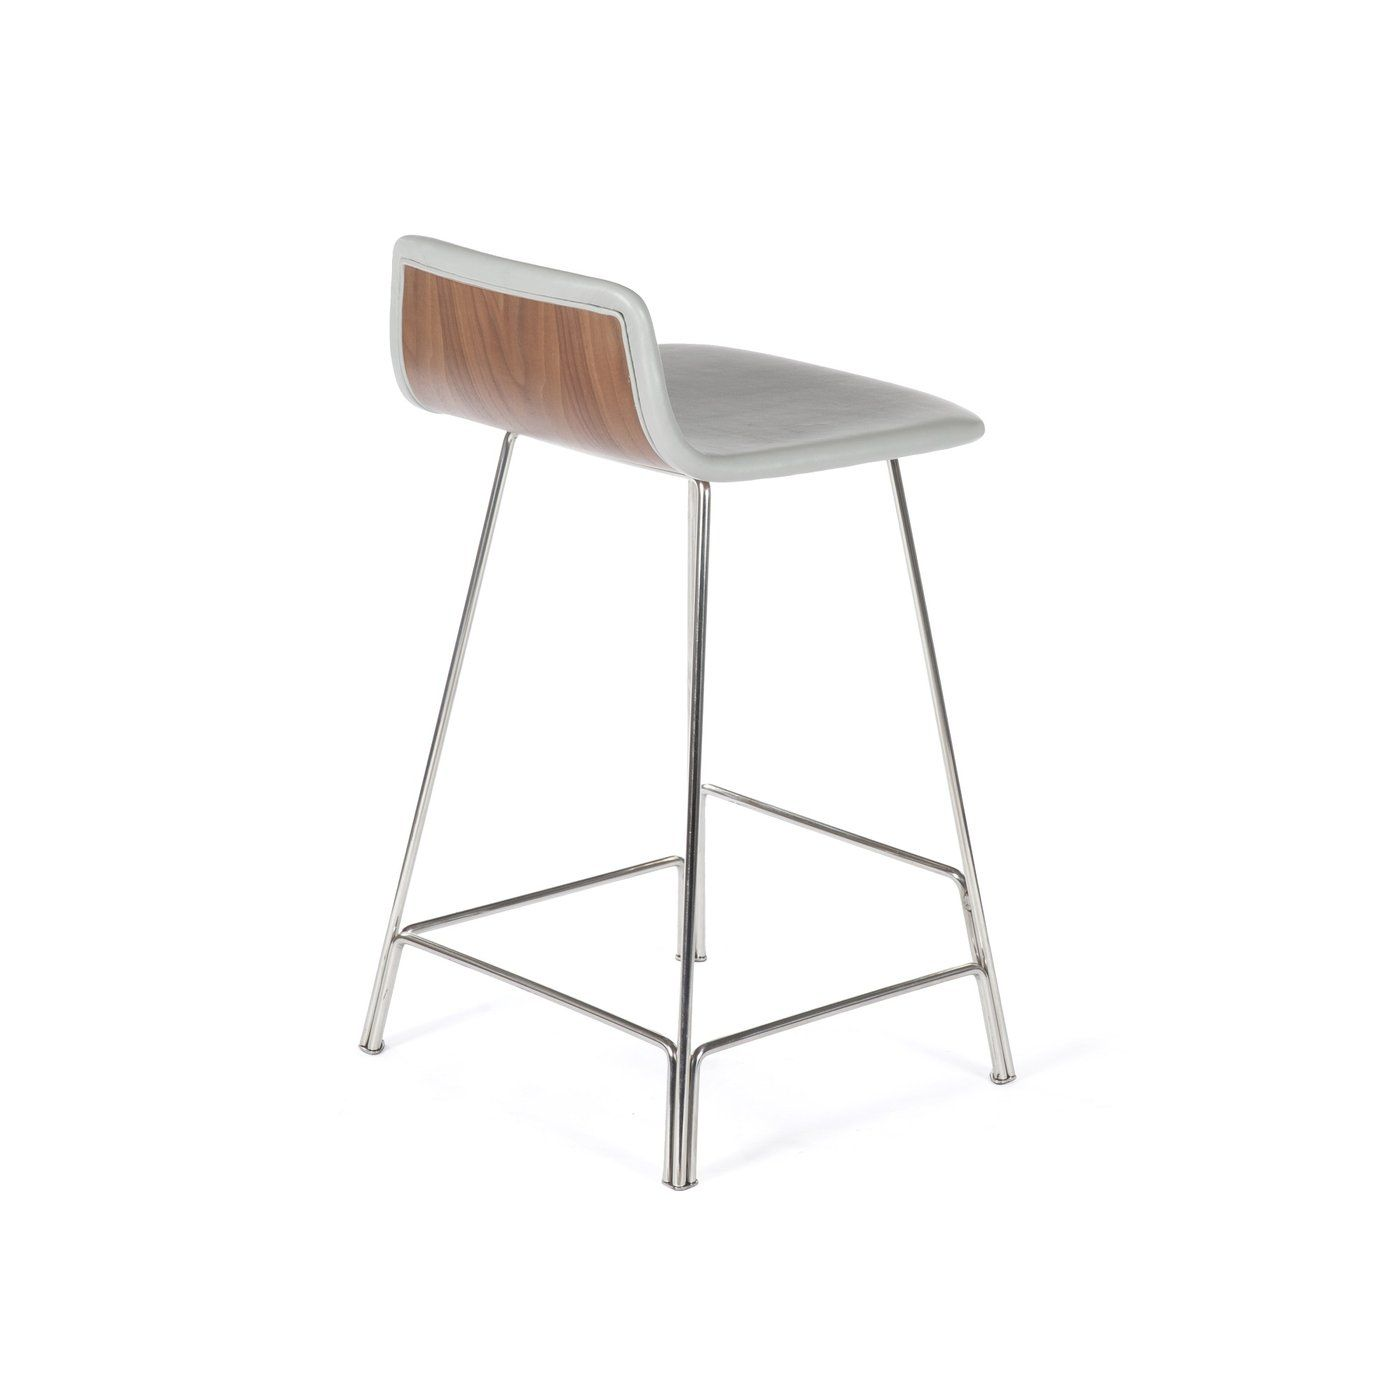 Pleasing Custom Rod Counter Stool Grey Leather And Walnut Unemploymentrelief Wooden Chair Designs For Living Room Unemploymentrelieforg